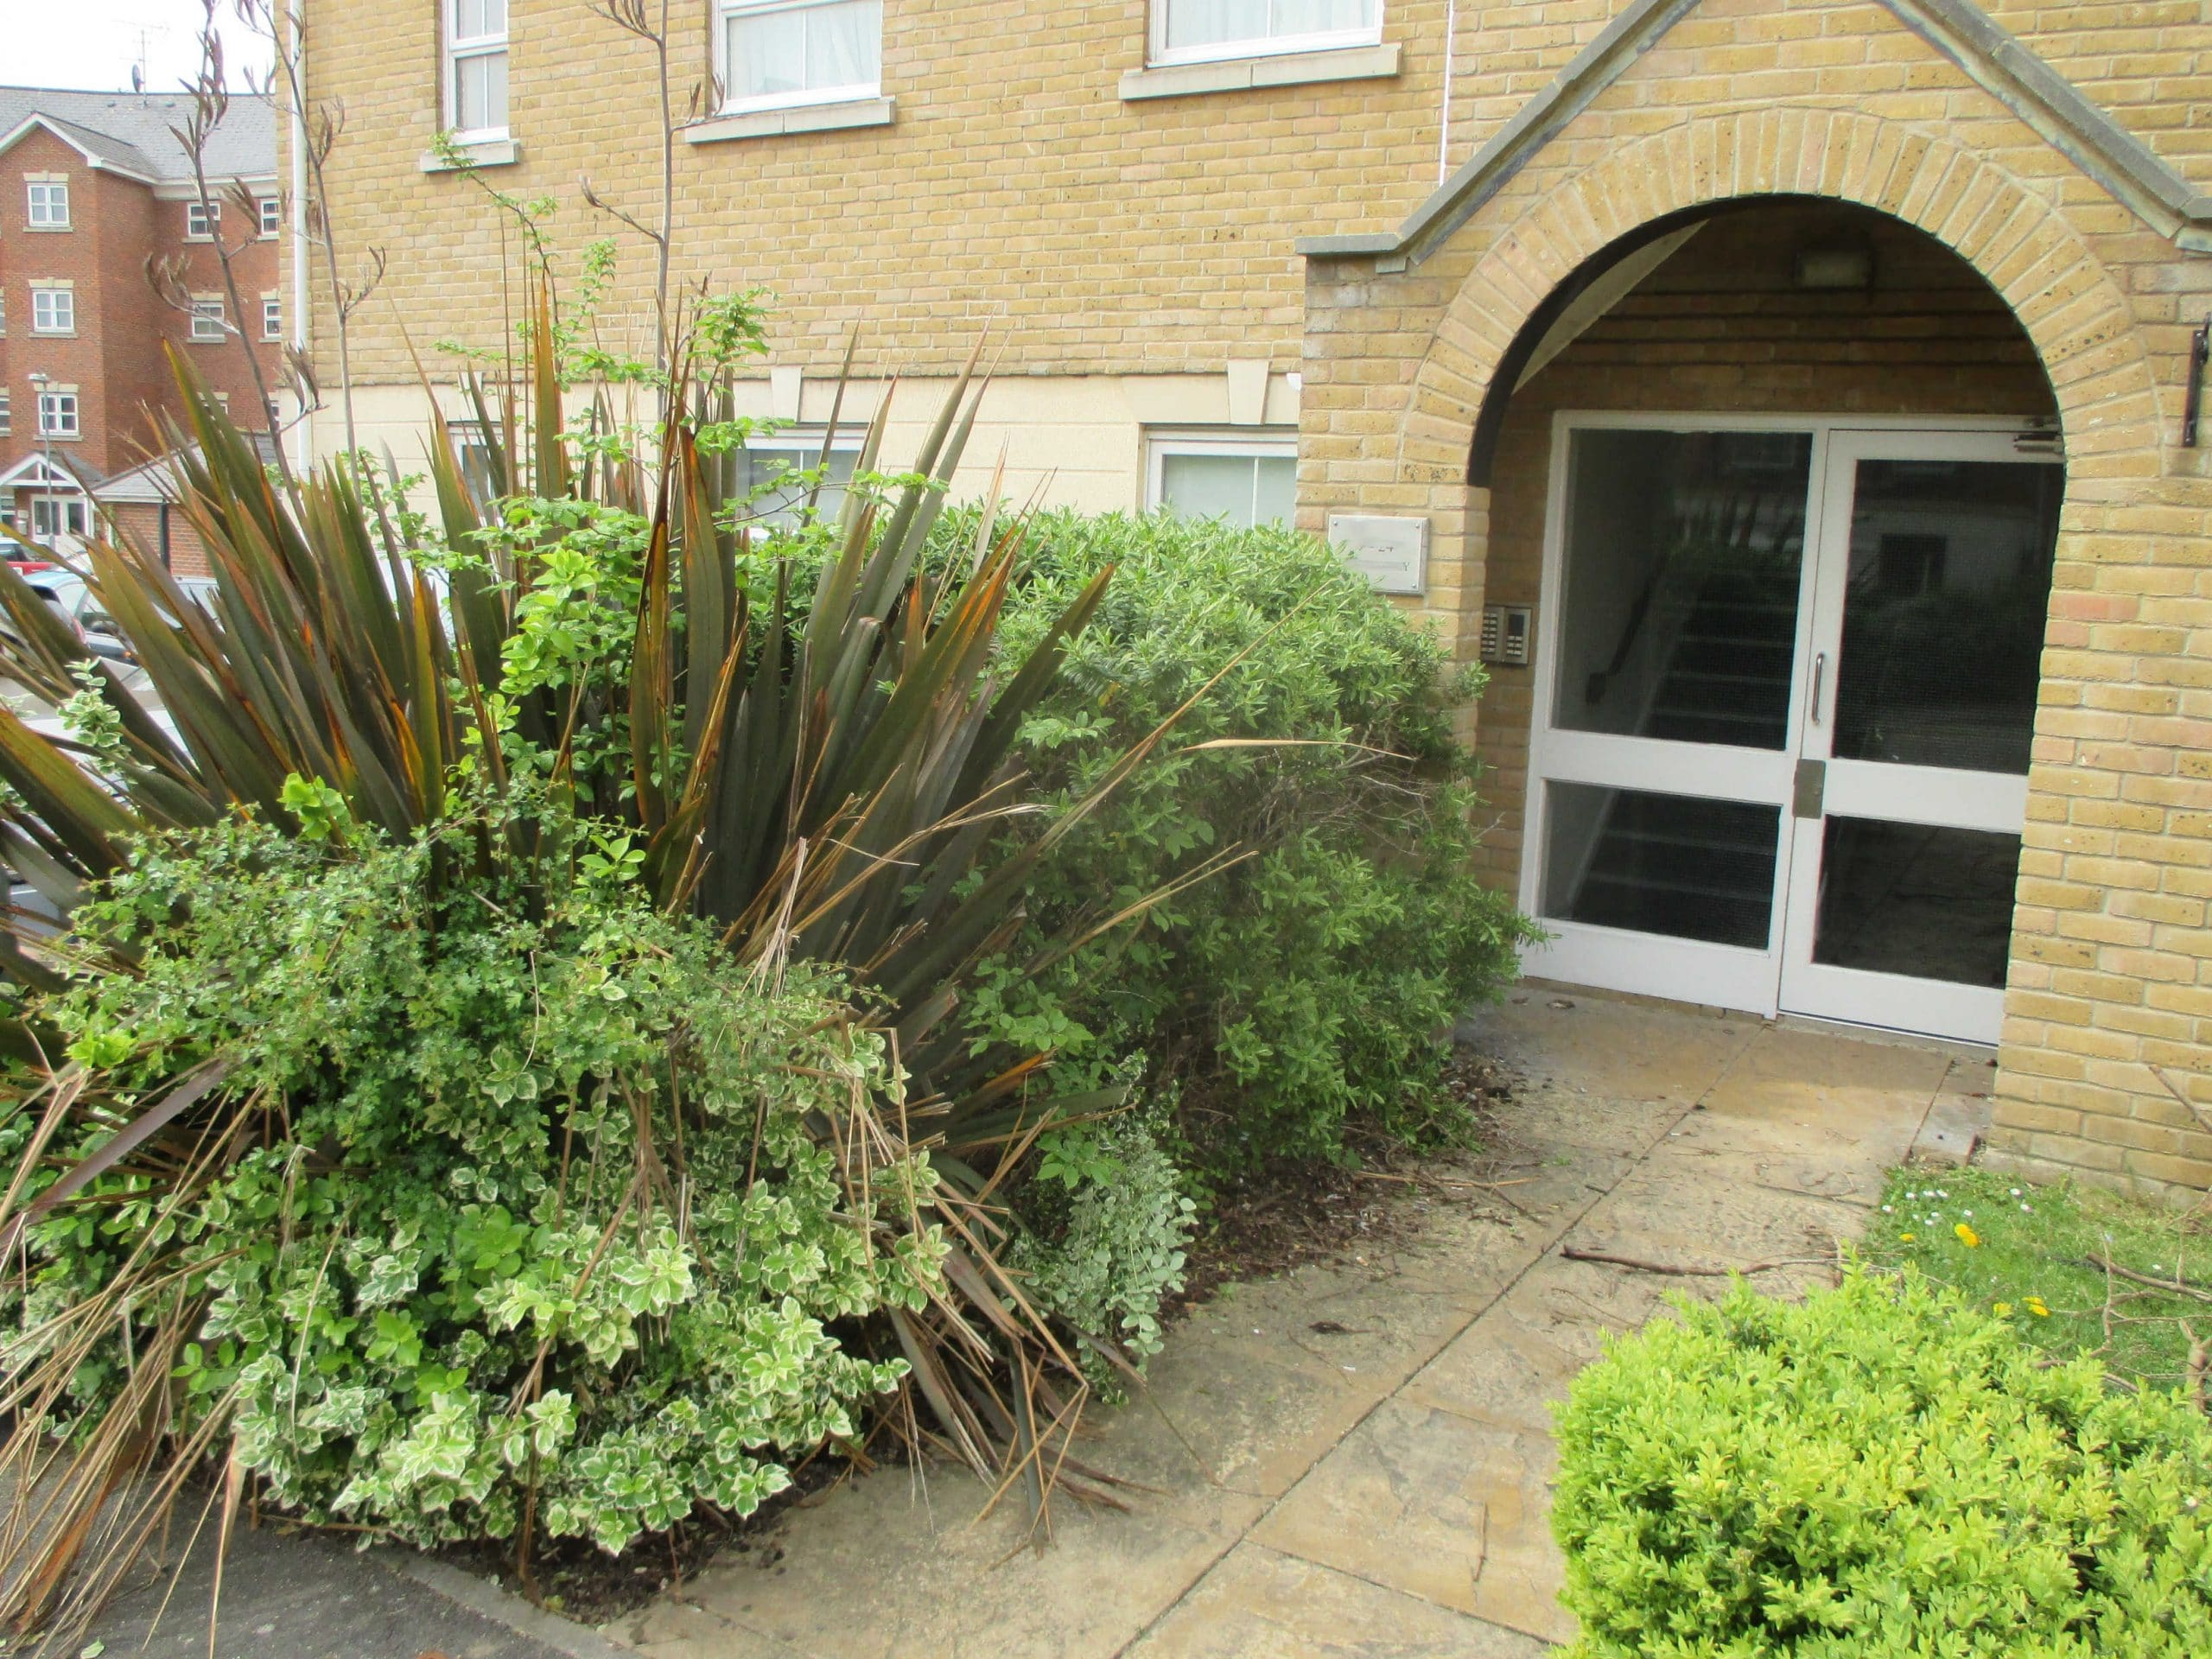 These plants were overgrown and required expert knowledge to prune them properly.